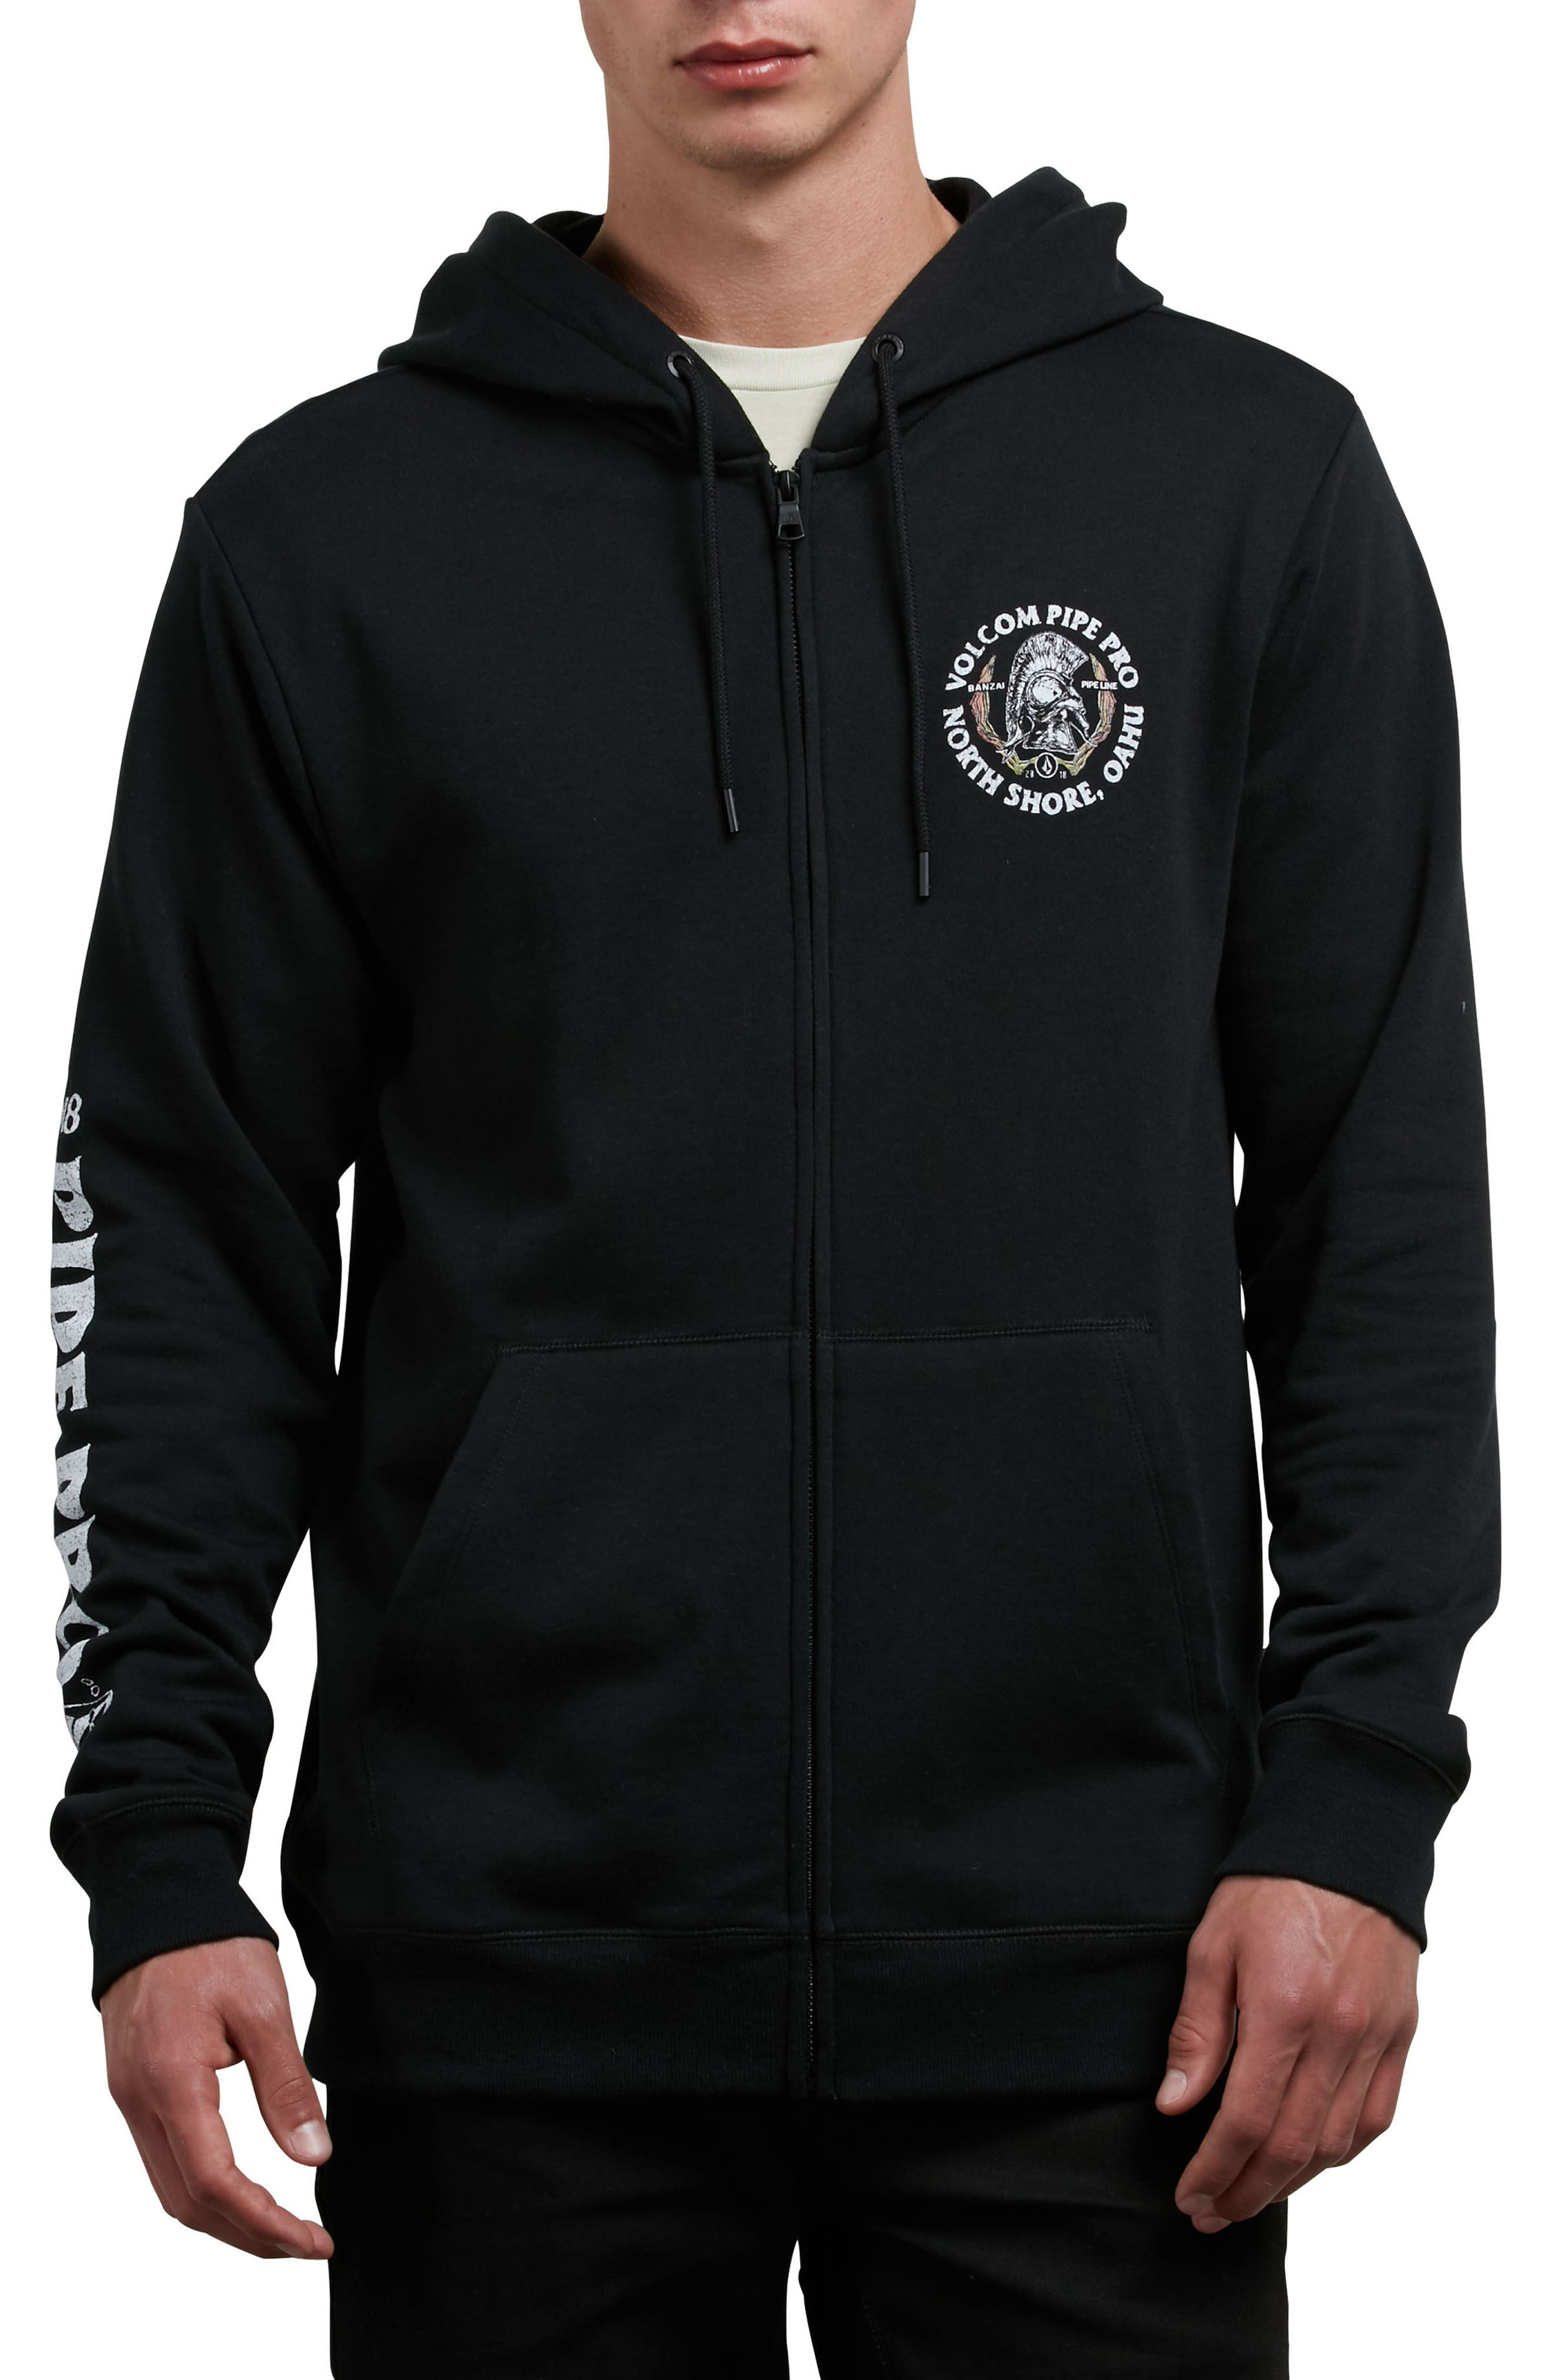 Pipe Pro Seal Graphic Zip Hoodie,                         Main,                         color, 001